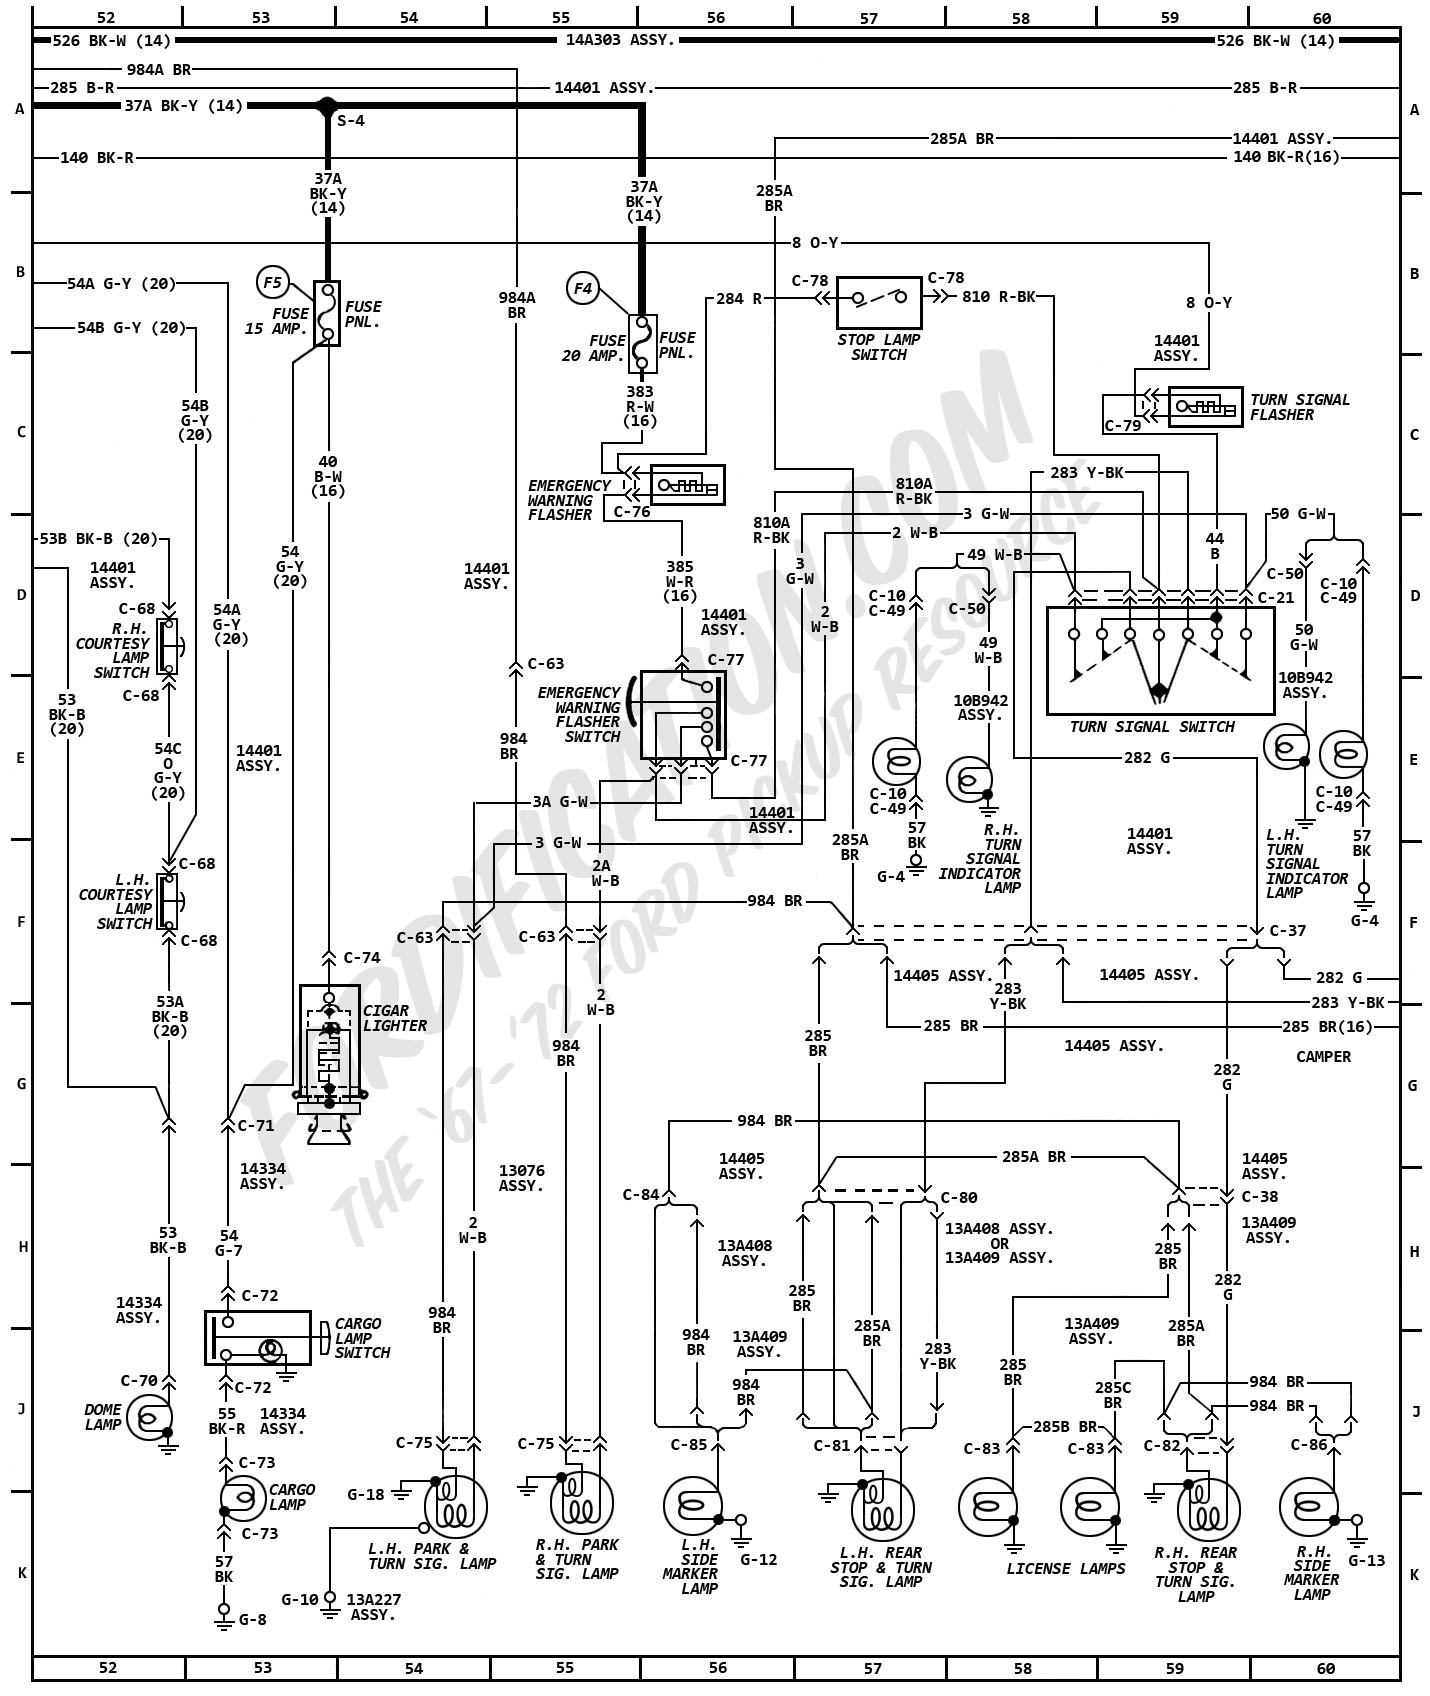 1972 Ford F250 Wiring Diagram List Of Schematic Circuit 1970 Ignition Switch Truck Diagrams Fordification Com Rh